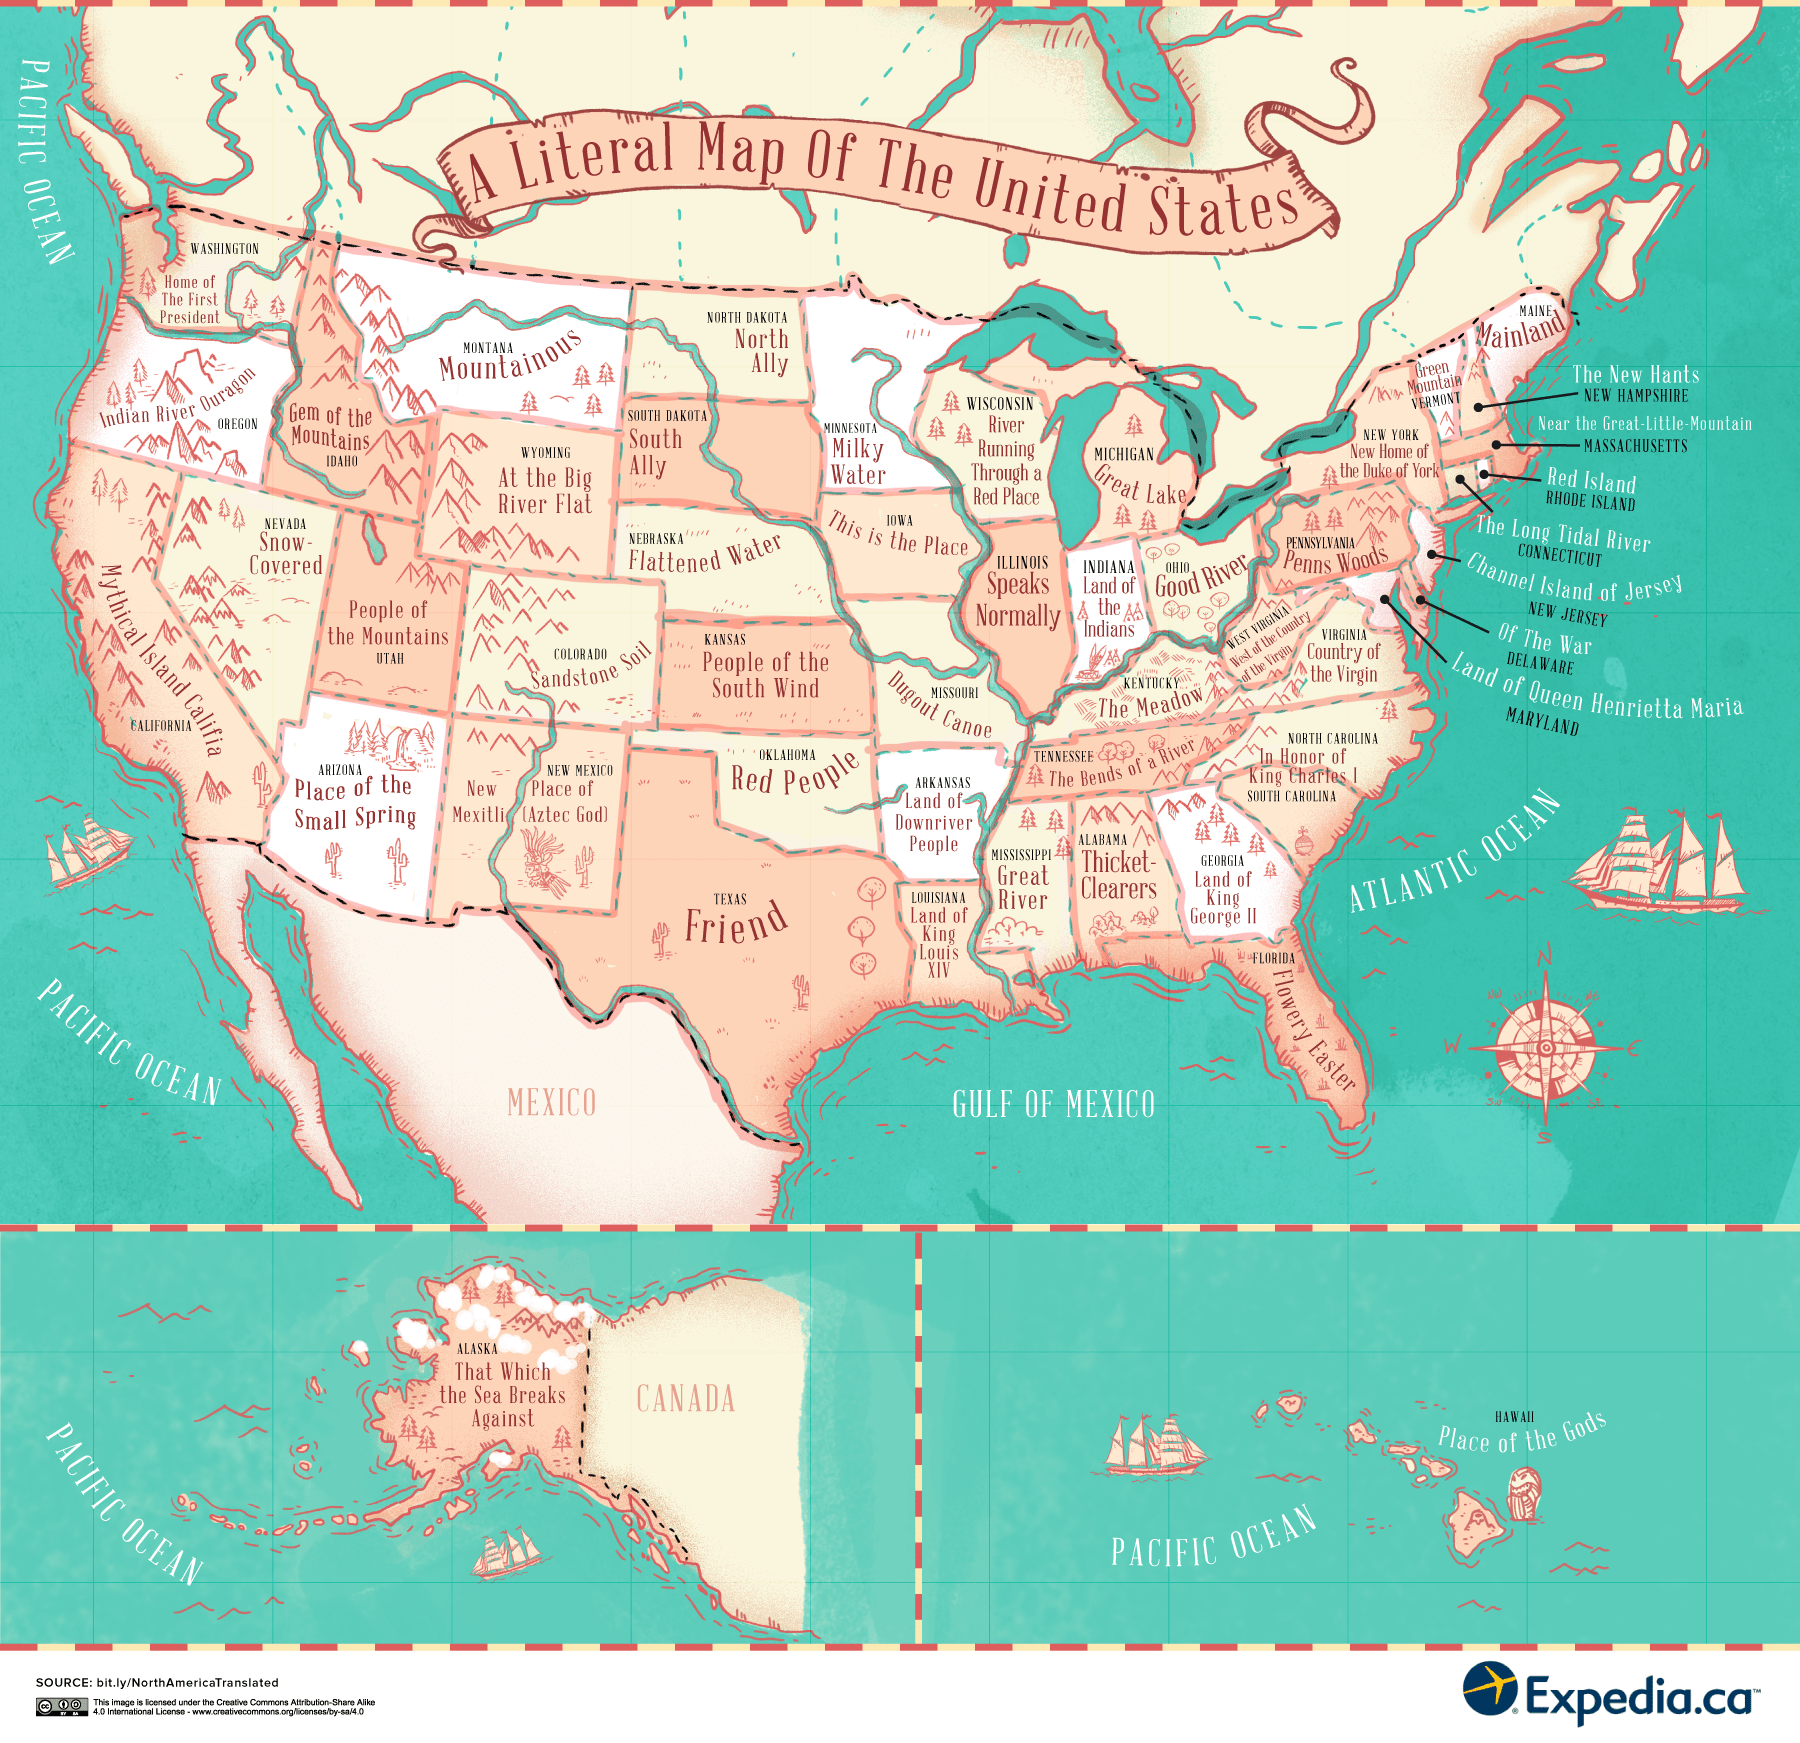 A Literal Translation Of Places In The United States